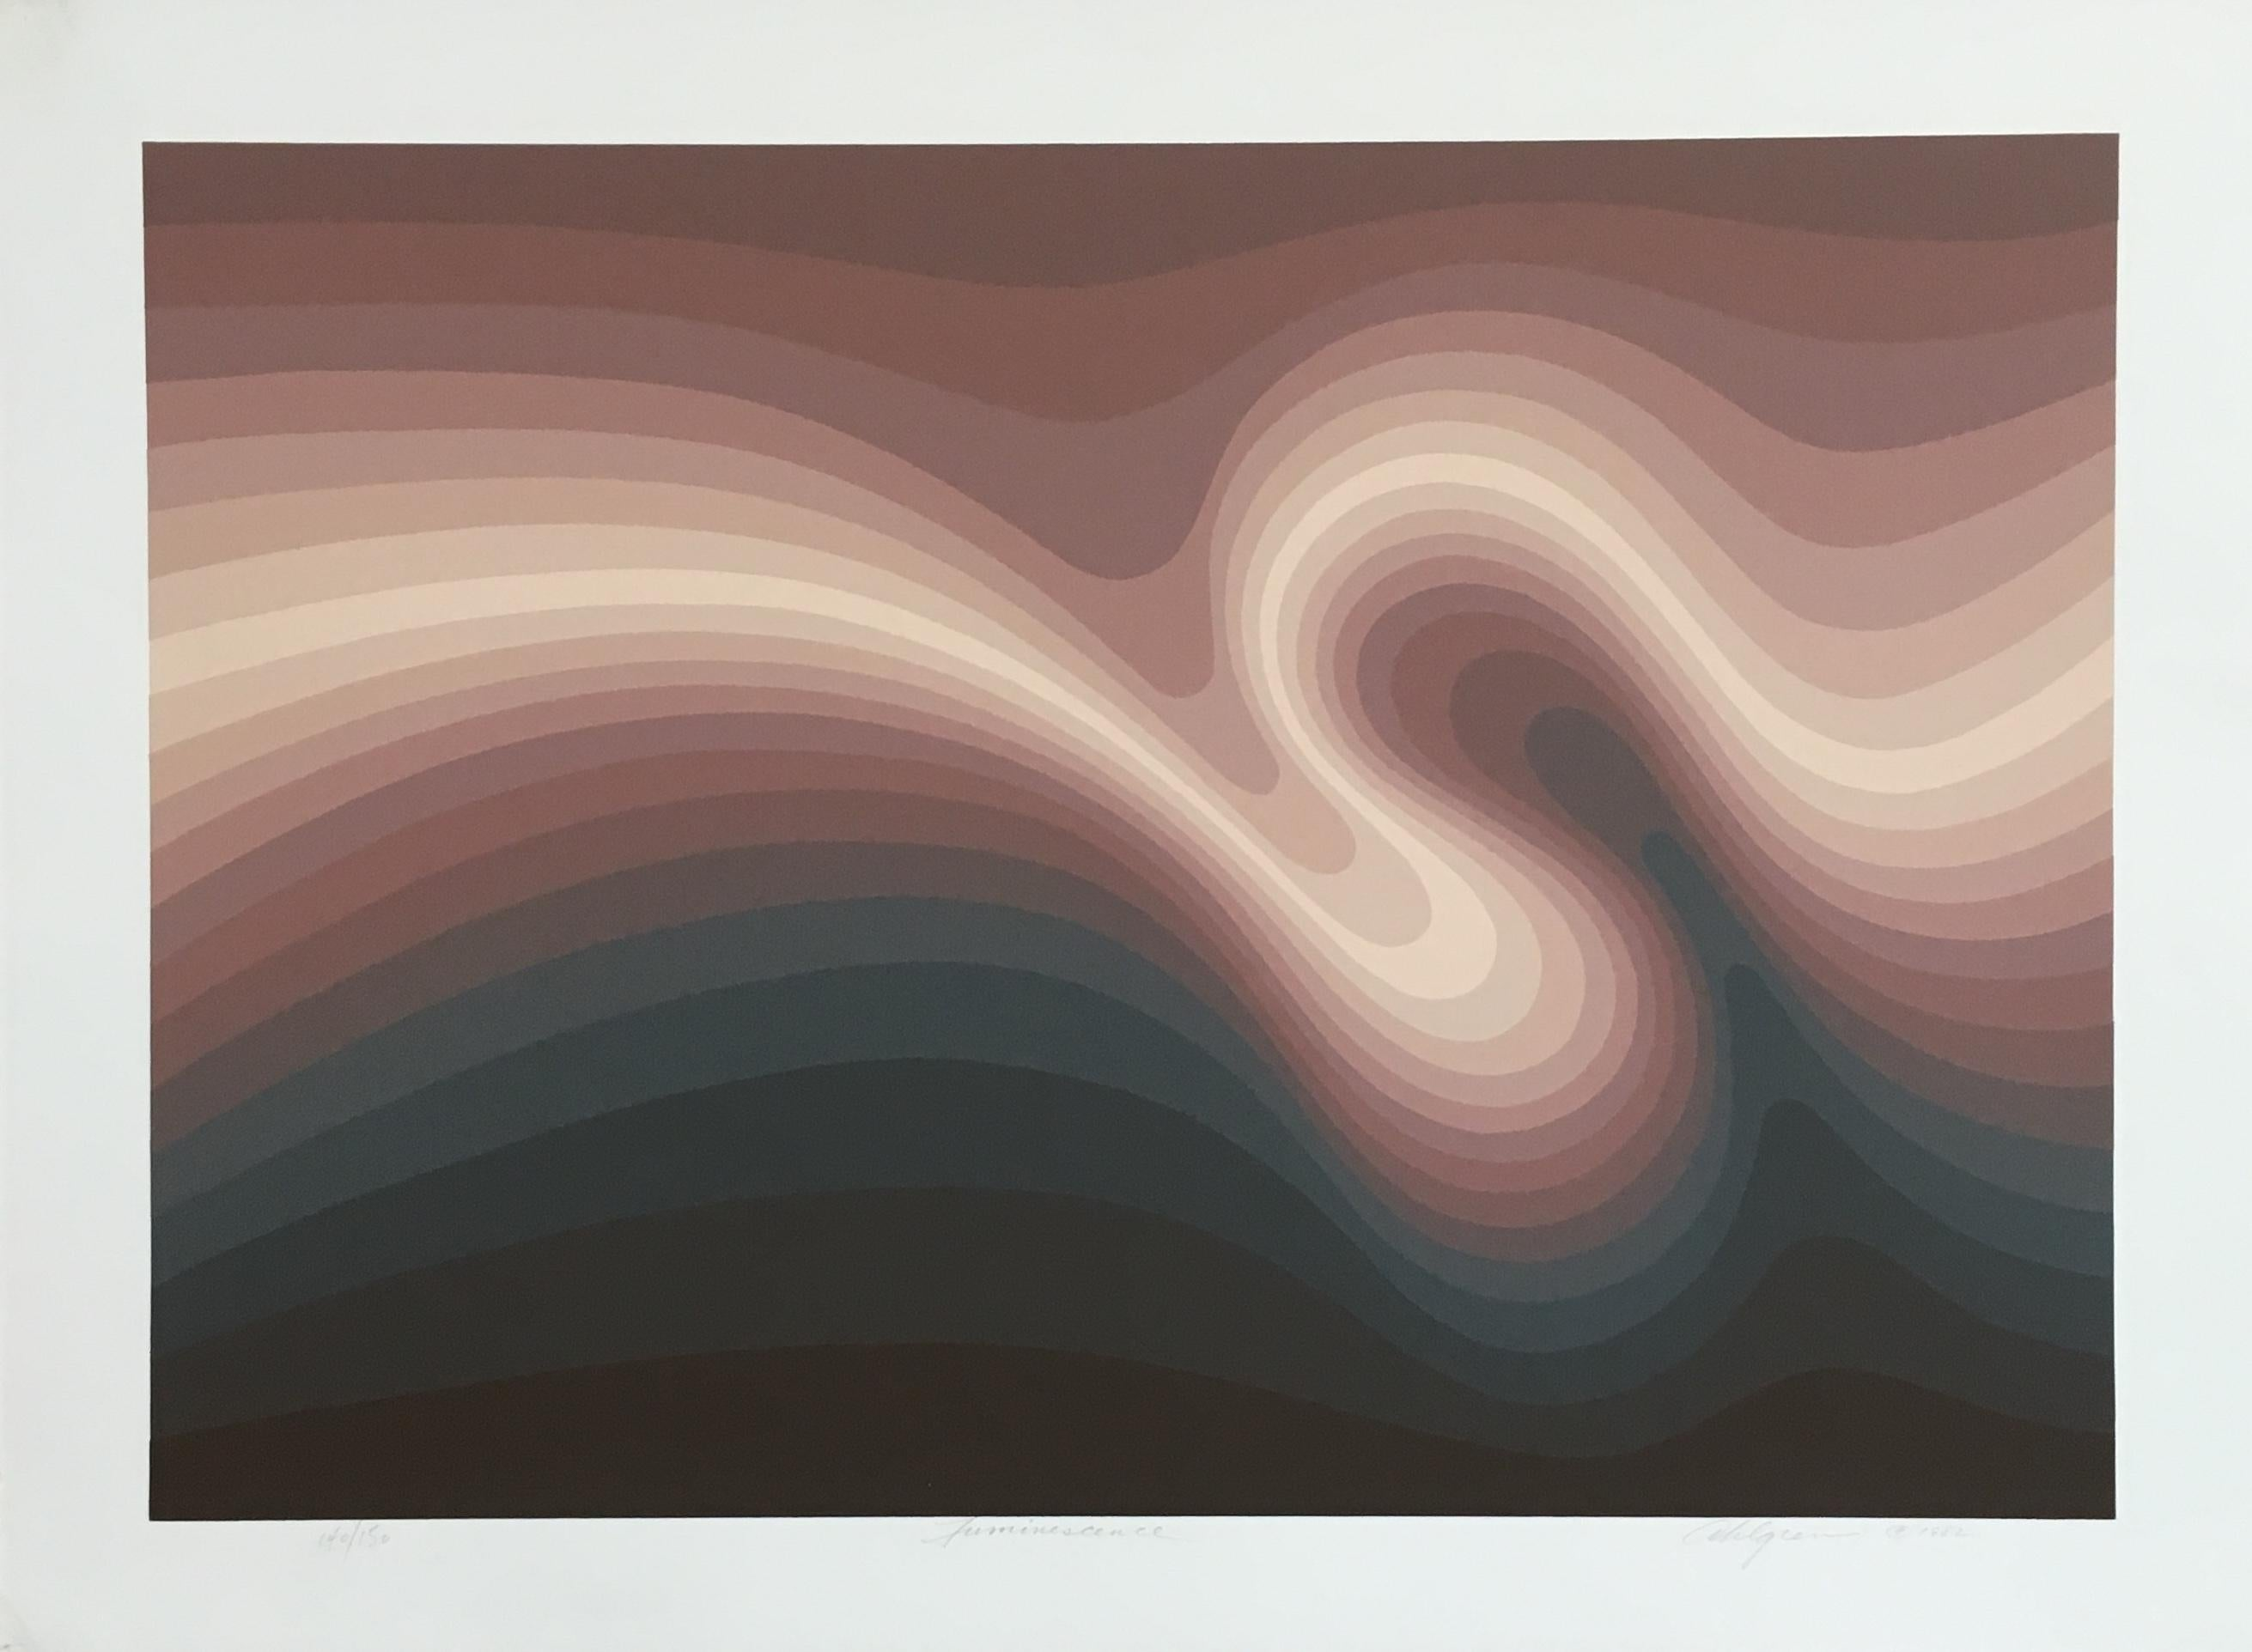 Roy Ahlgren 'Luminescence' Signed Limited Edition Serigraph Print